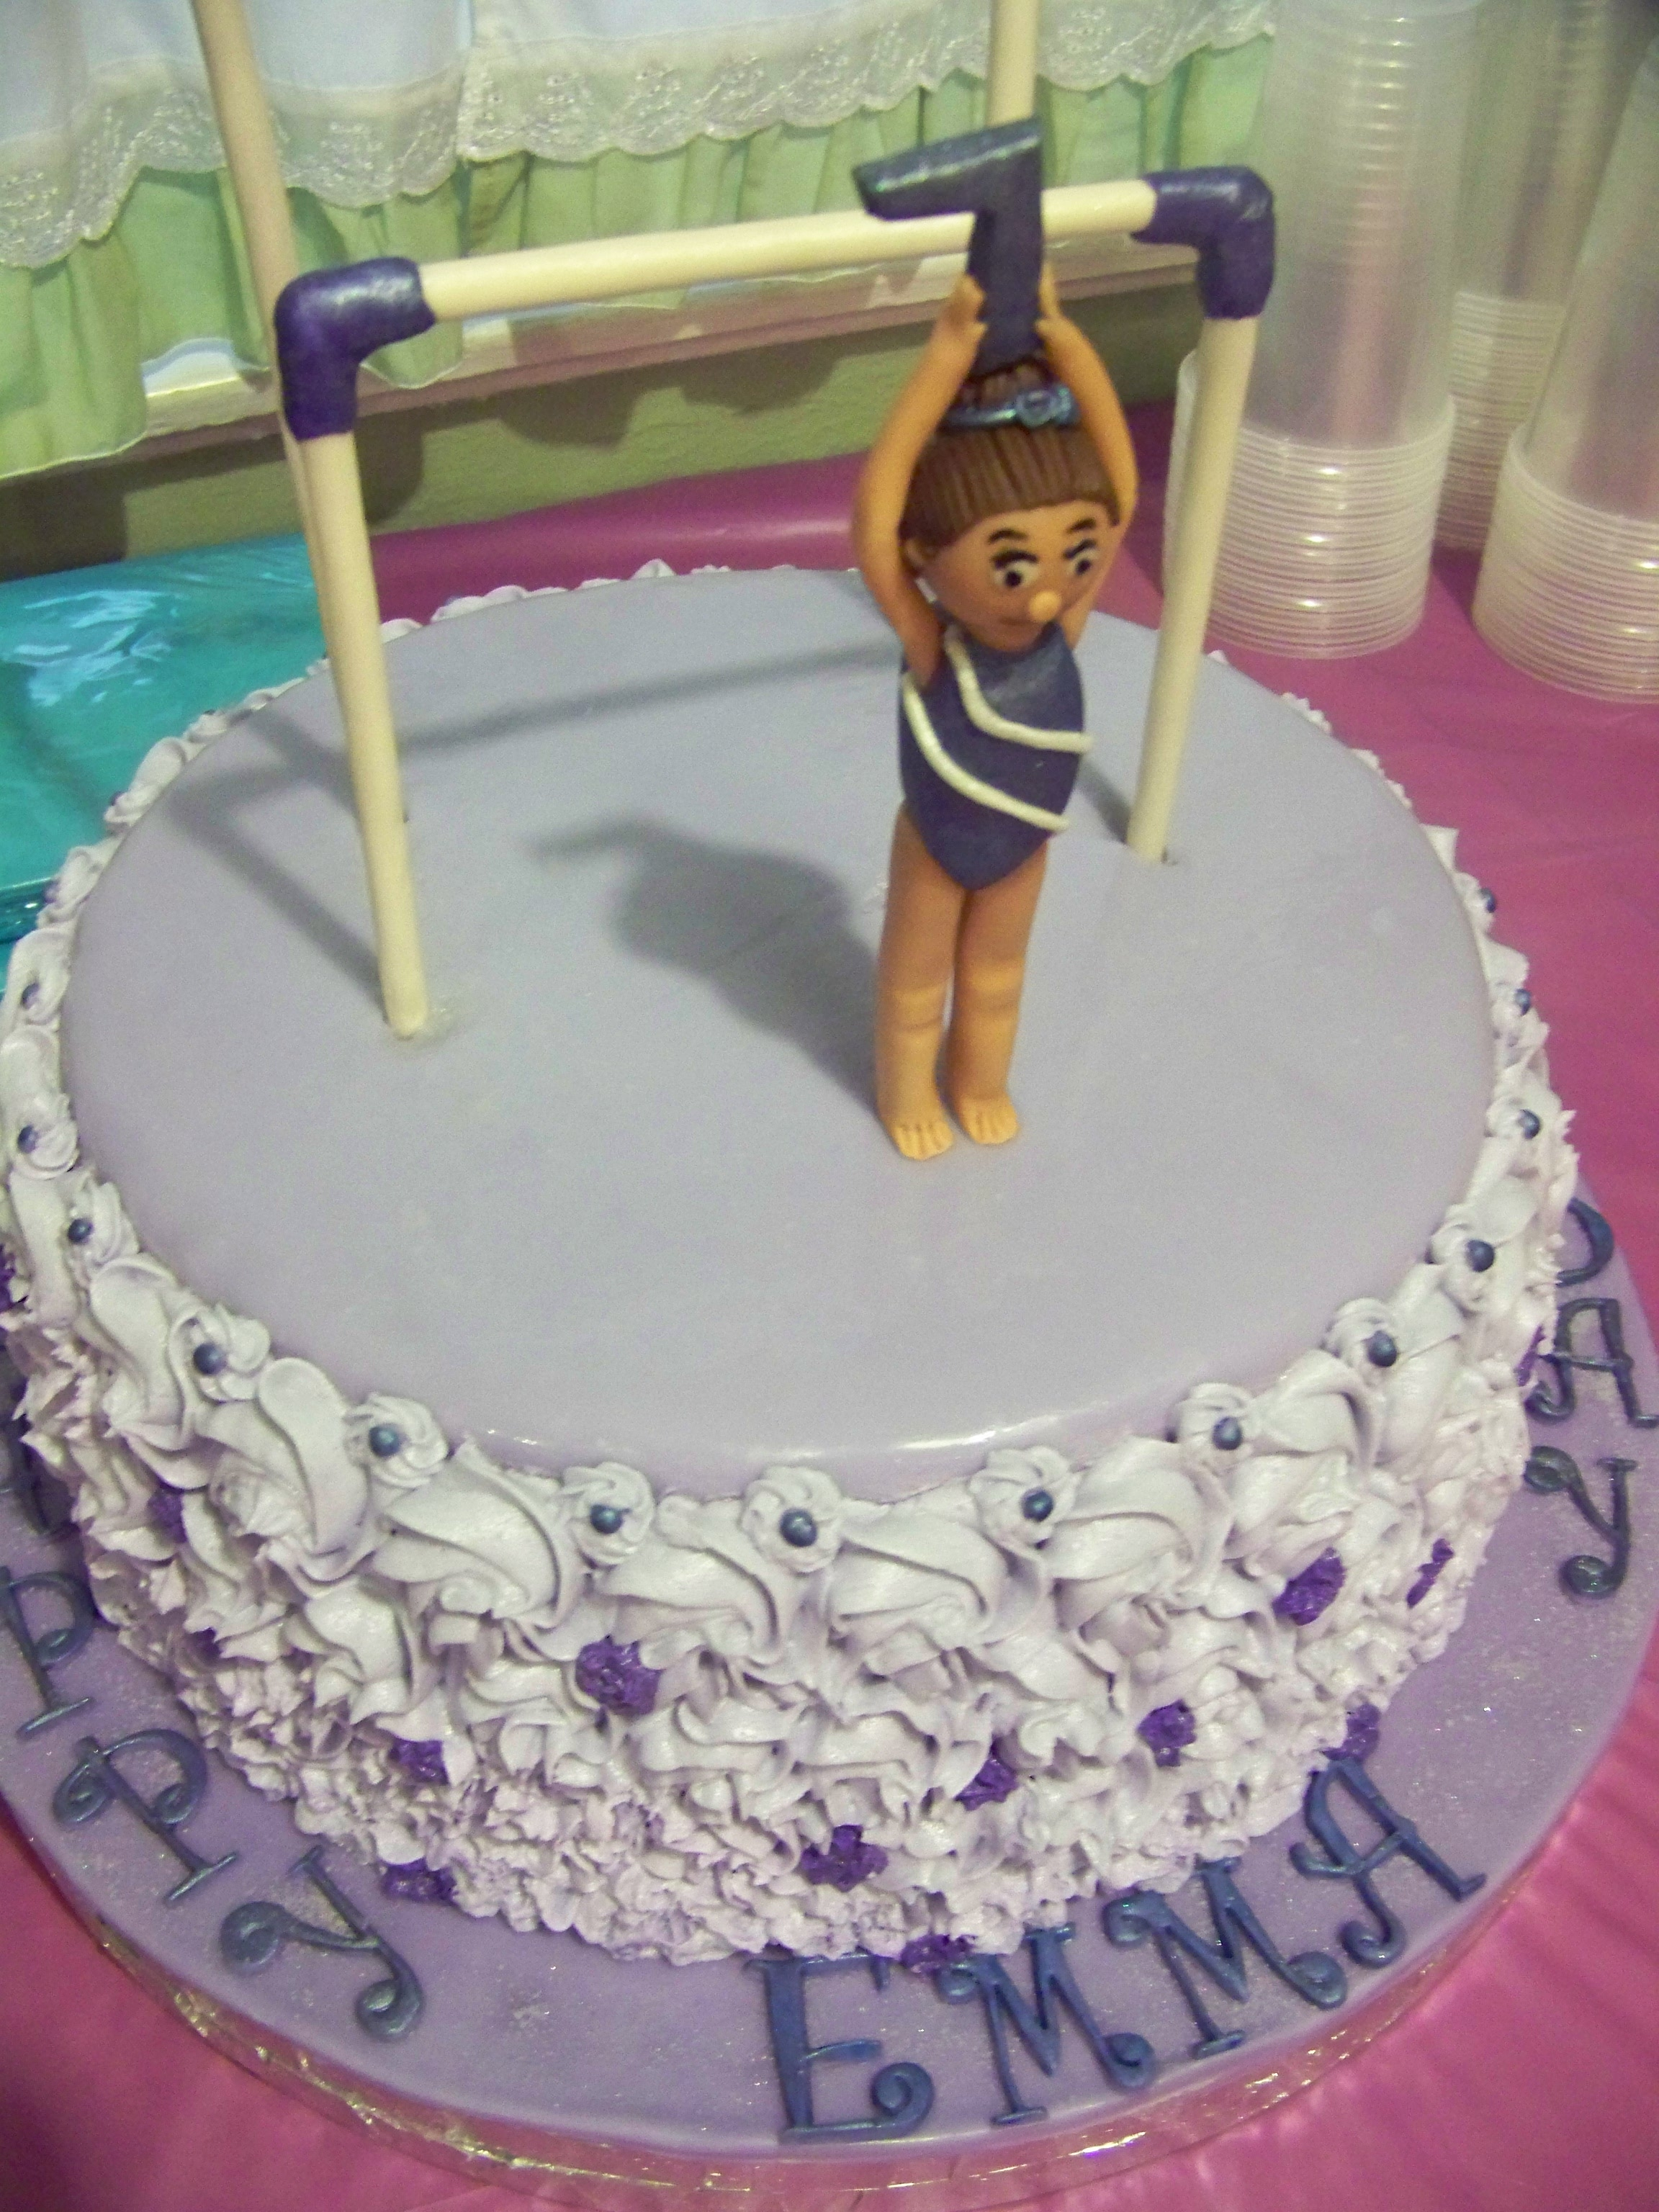 Cake Decorating Ideas Gymnastics : Gymnastics Birthday Cake - CakeCentral.com